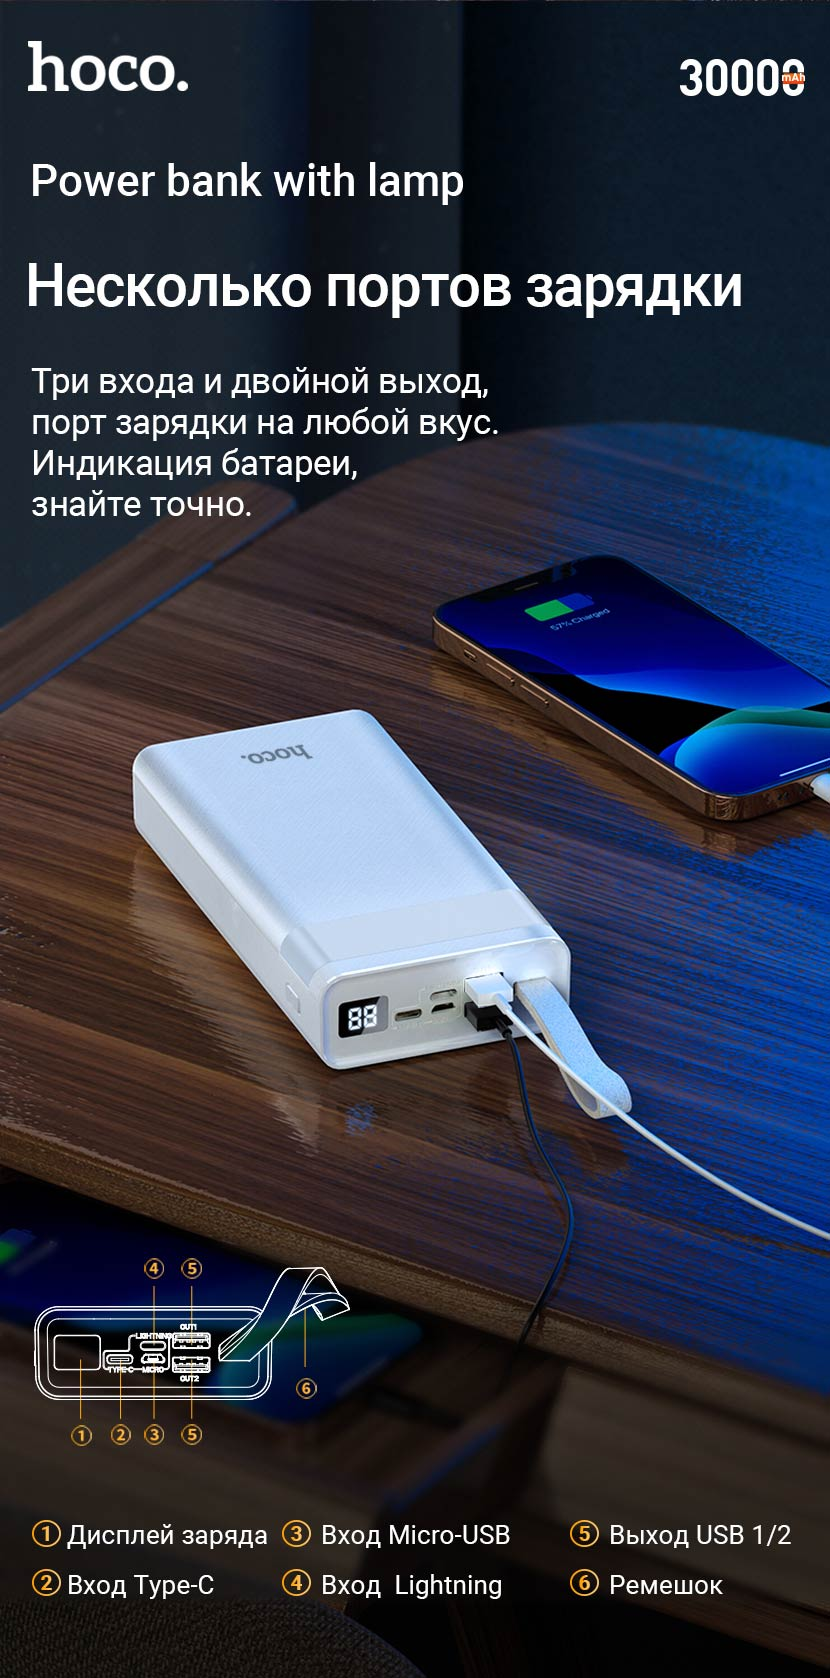 hoco news j73 powerful desk lamp power bank 30000mah ports ru